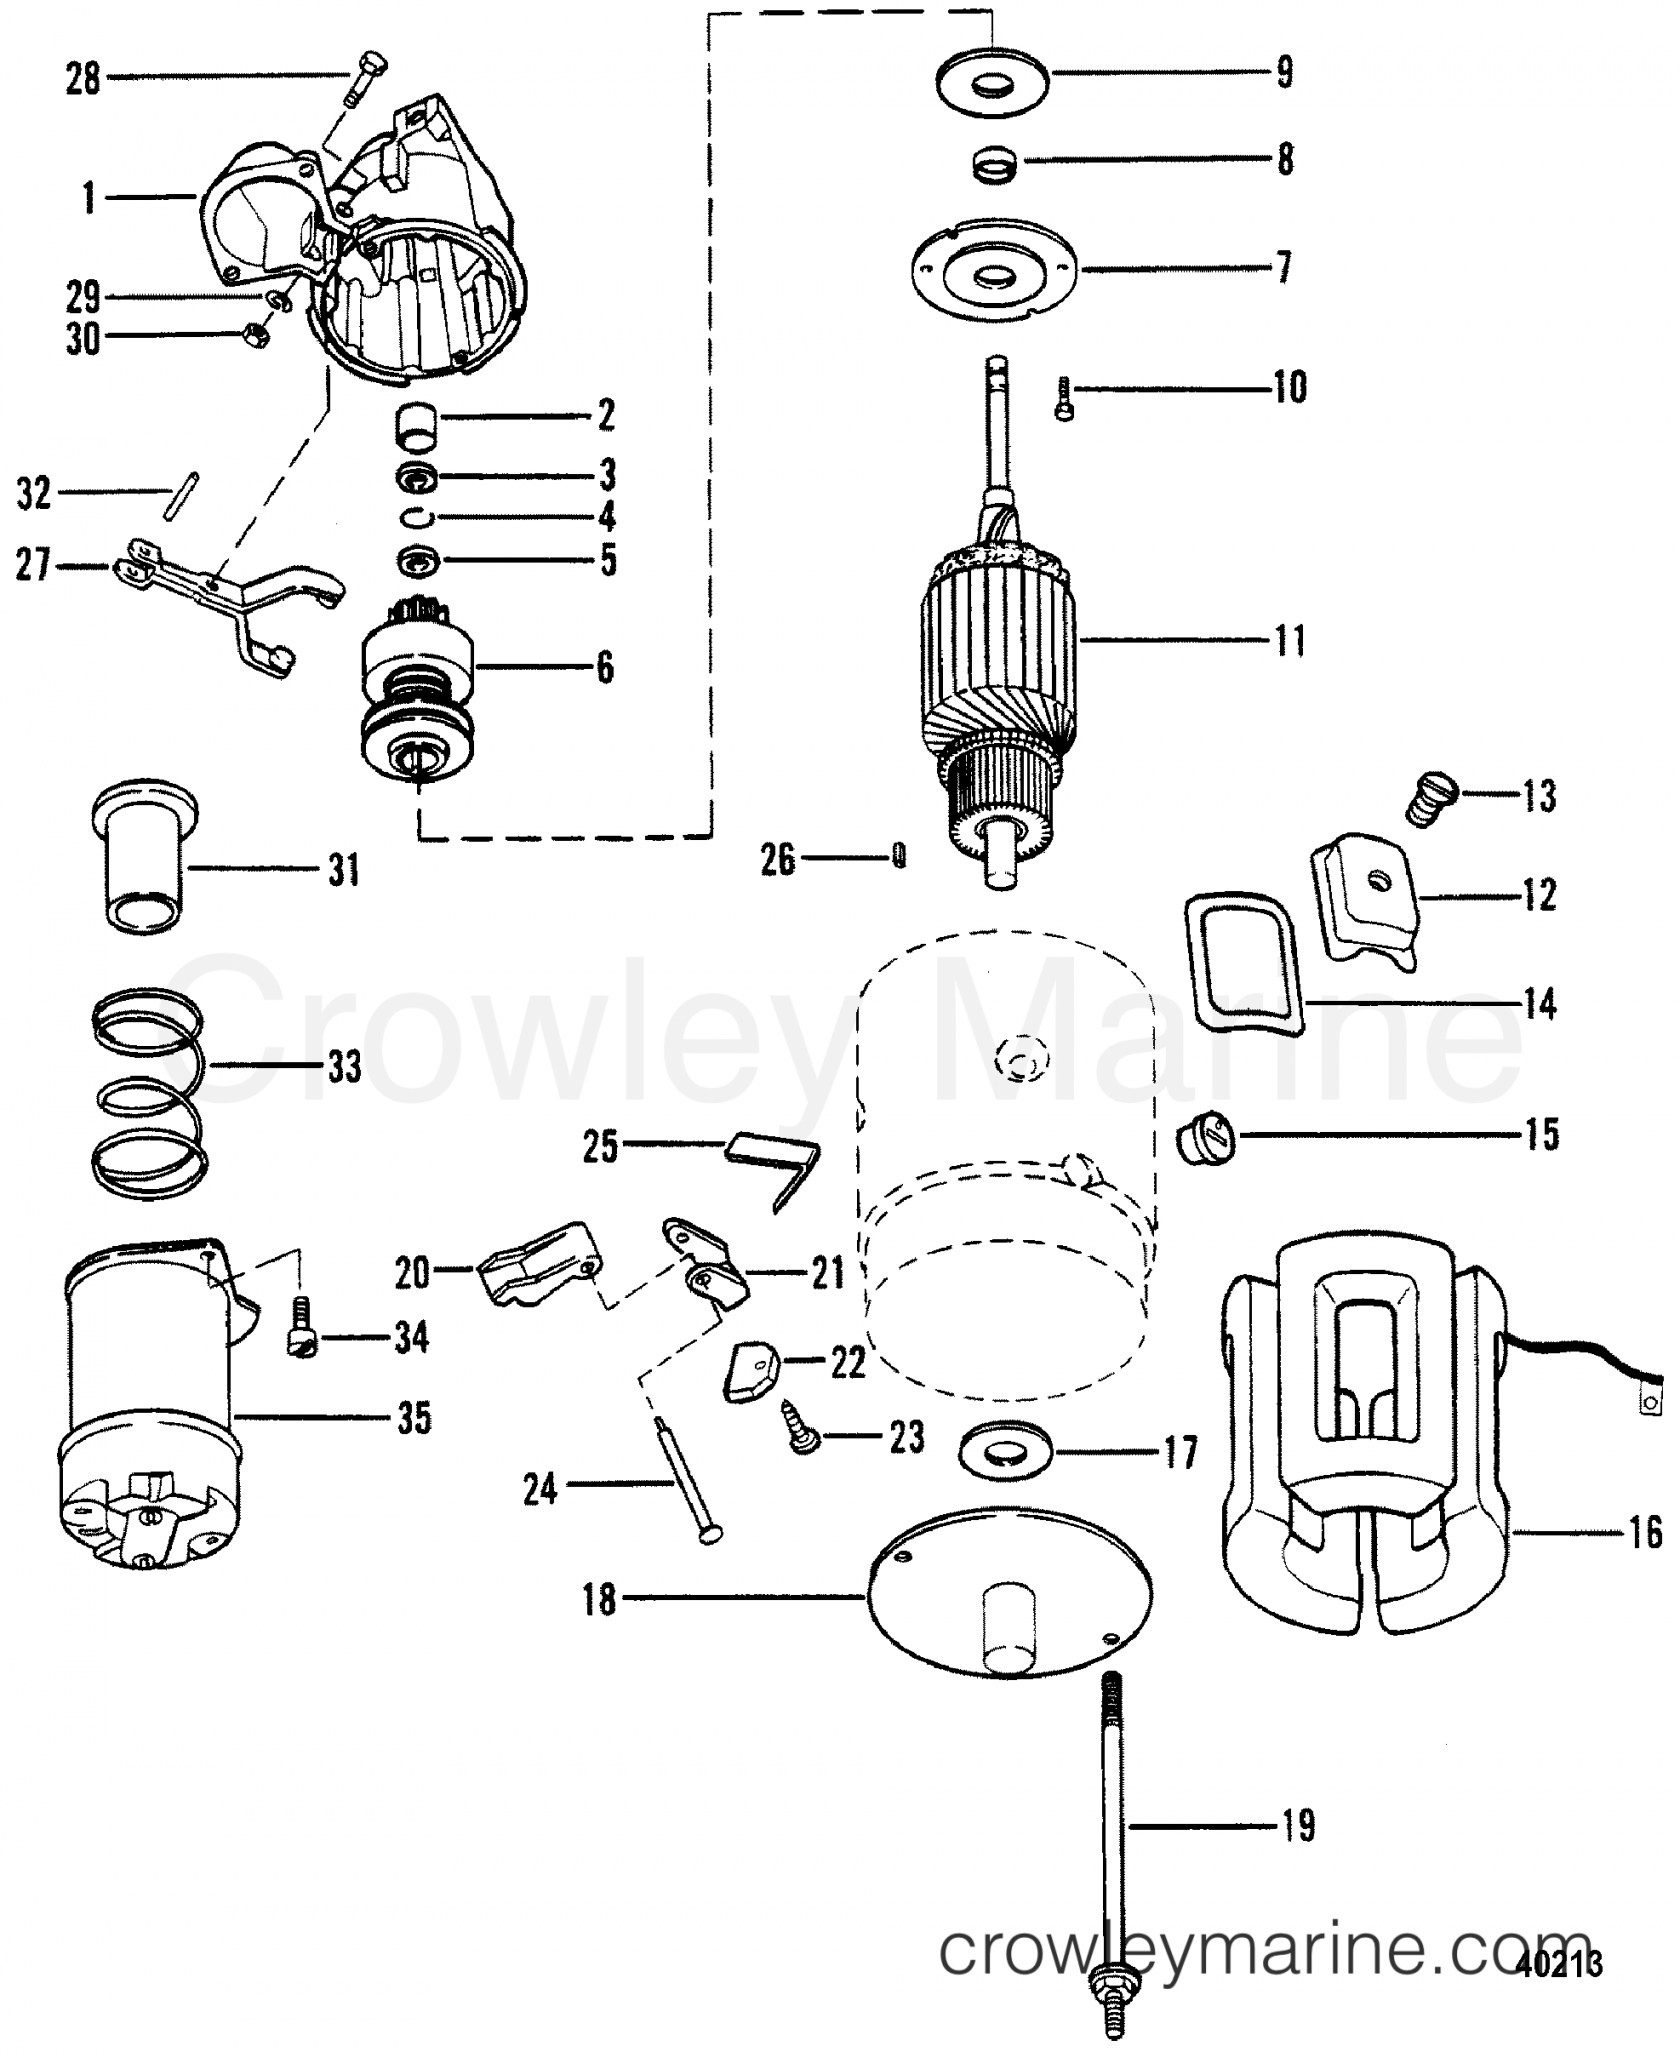 Electric Motor Drawing At Free For Personal Use 6 Pole Wiring Diagram Download 1680x2052 Diagrams Starter Terminals Circuit